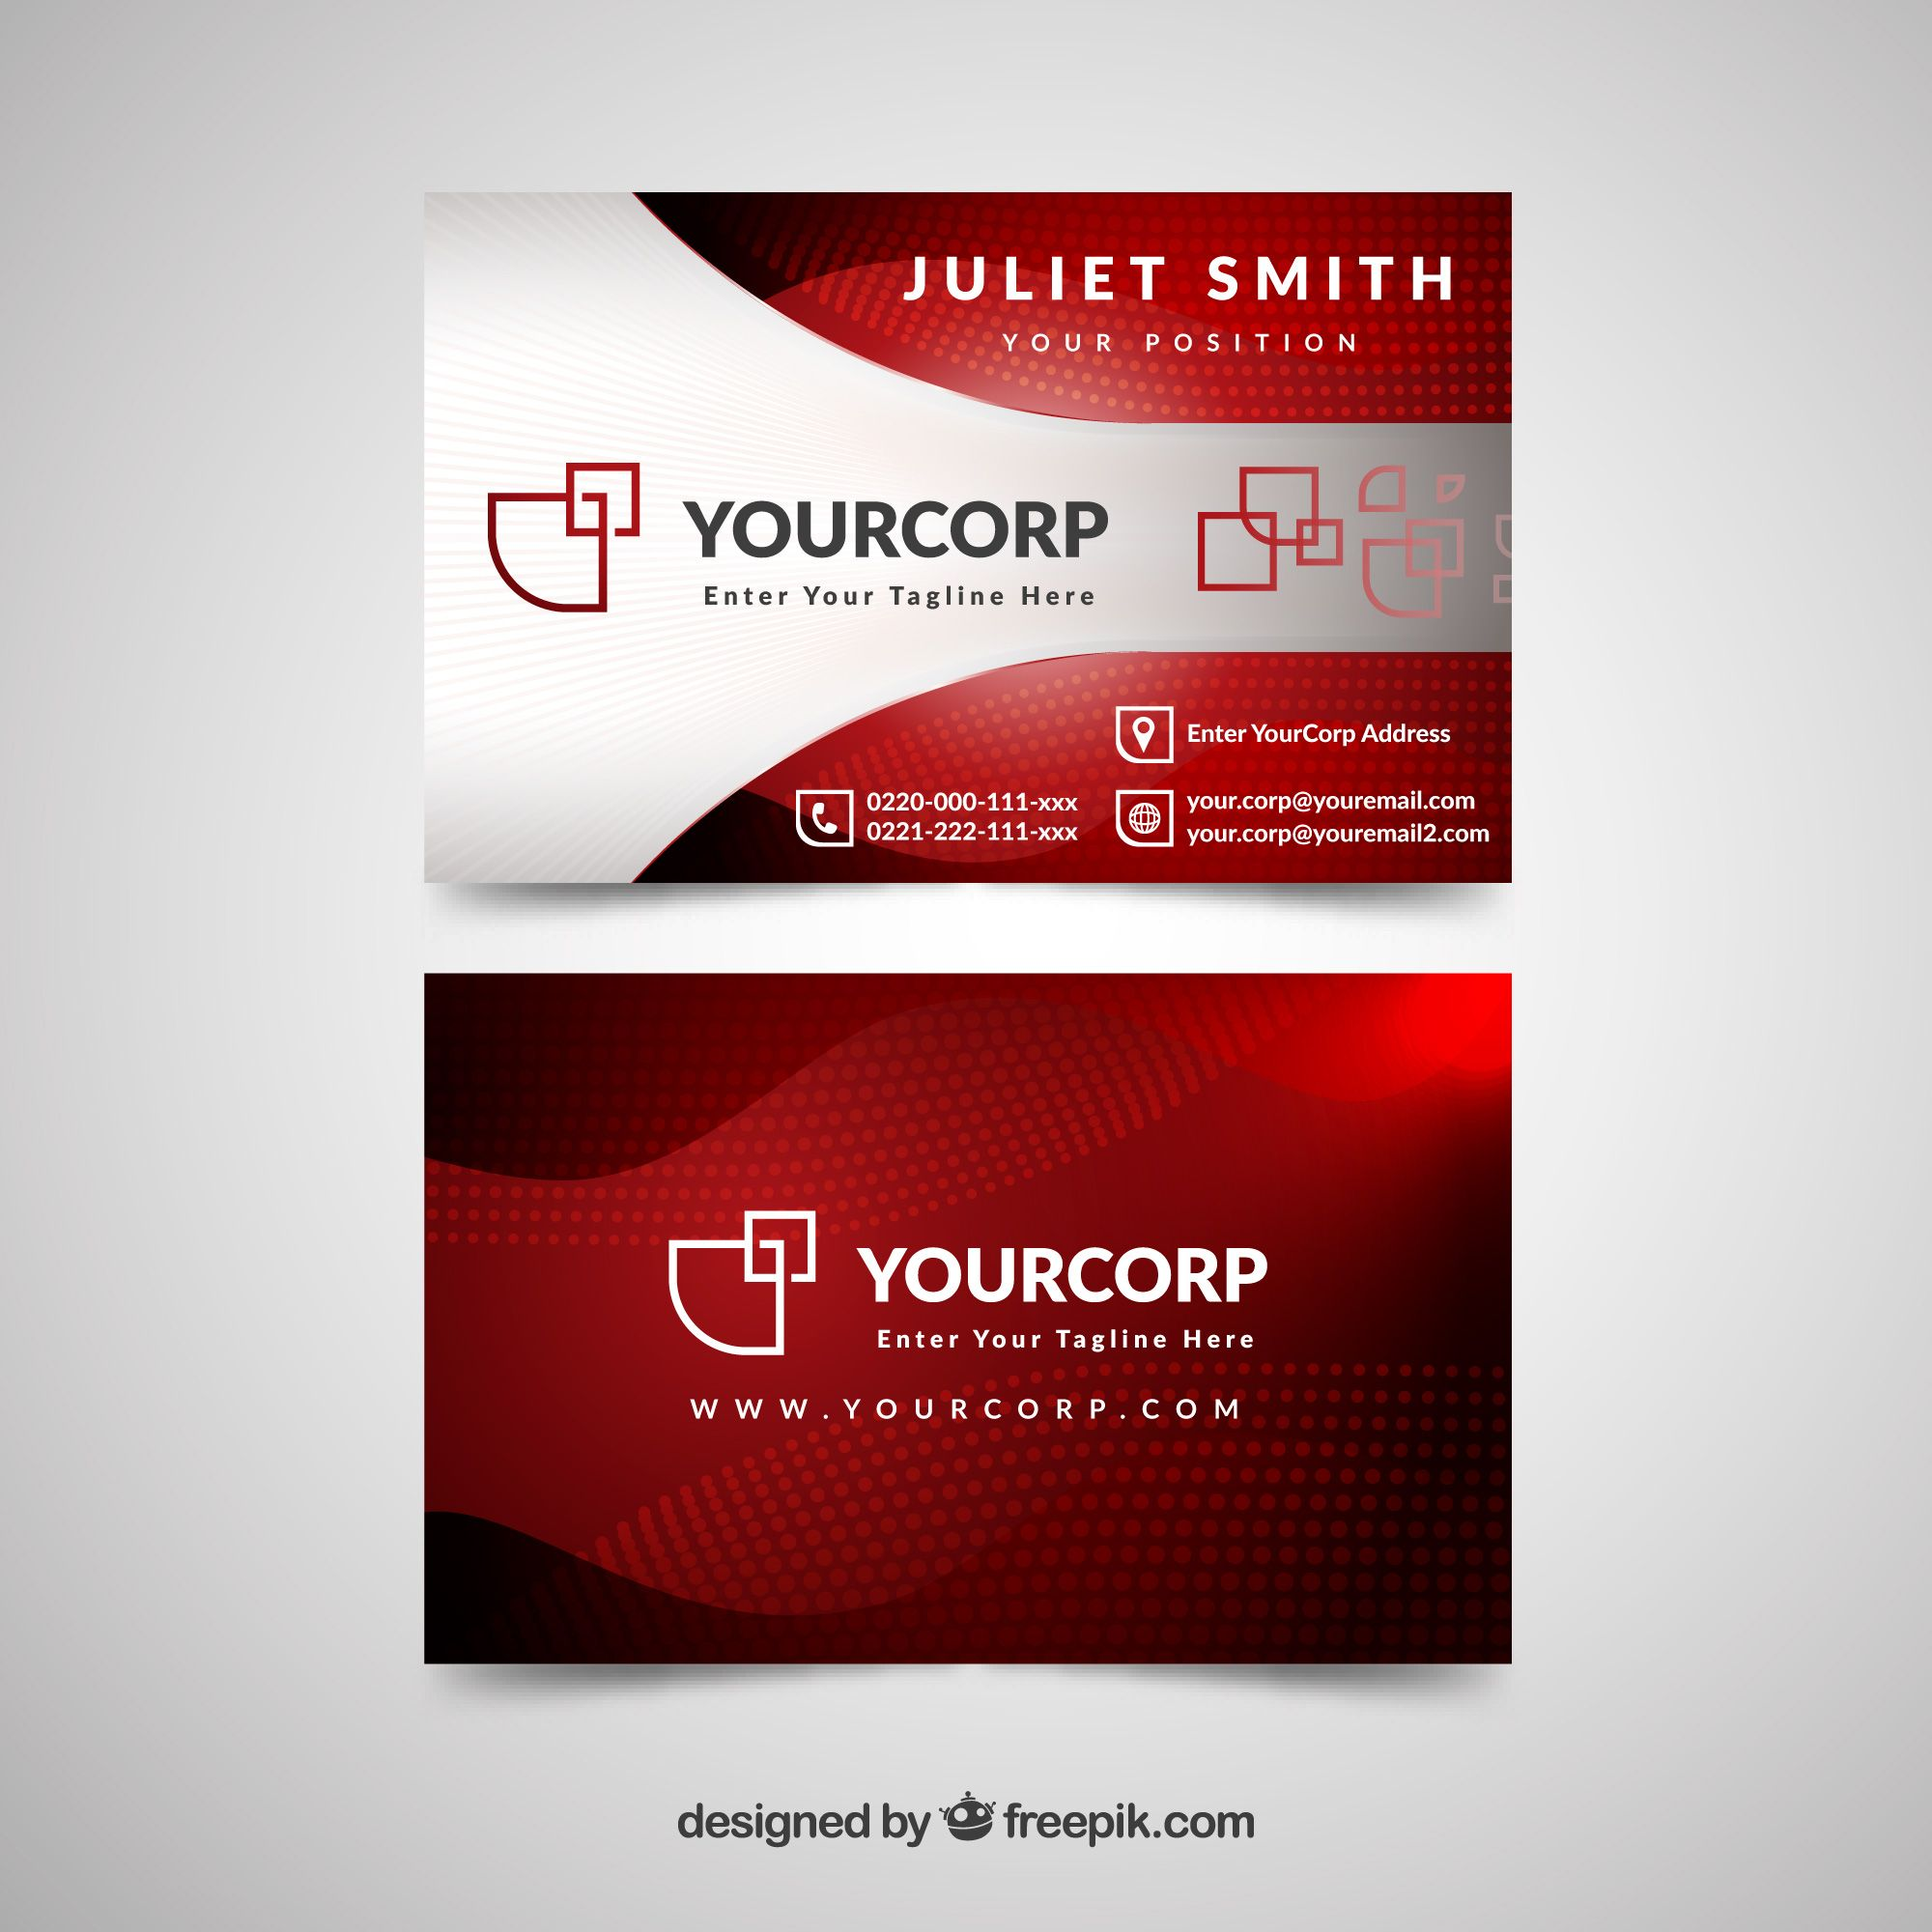 Pin by sy chuang on business card designs pinterest business cards discover ideas about professional business cards colourmoves